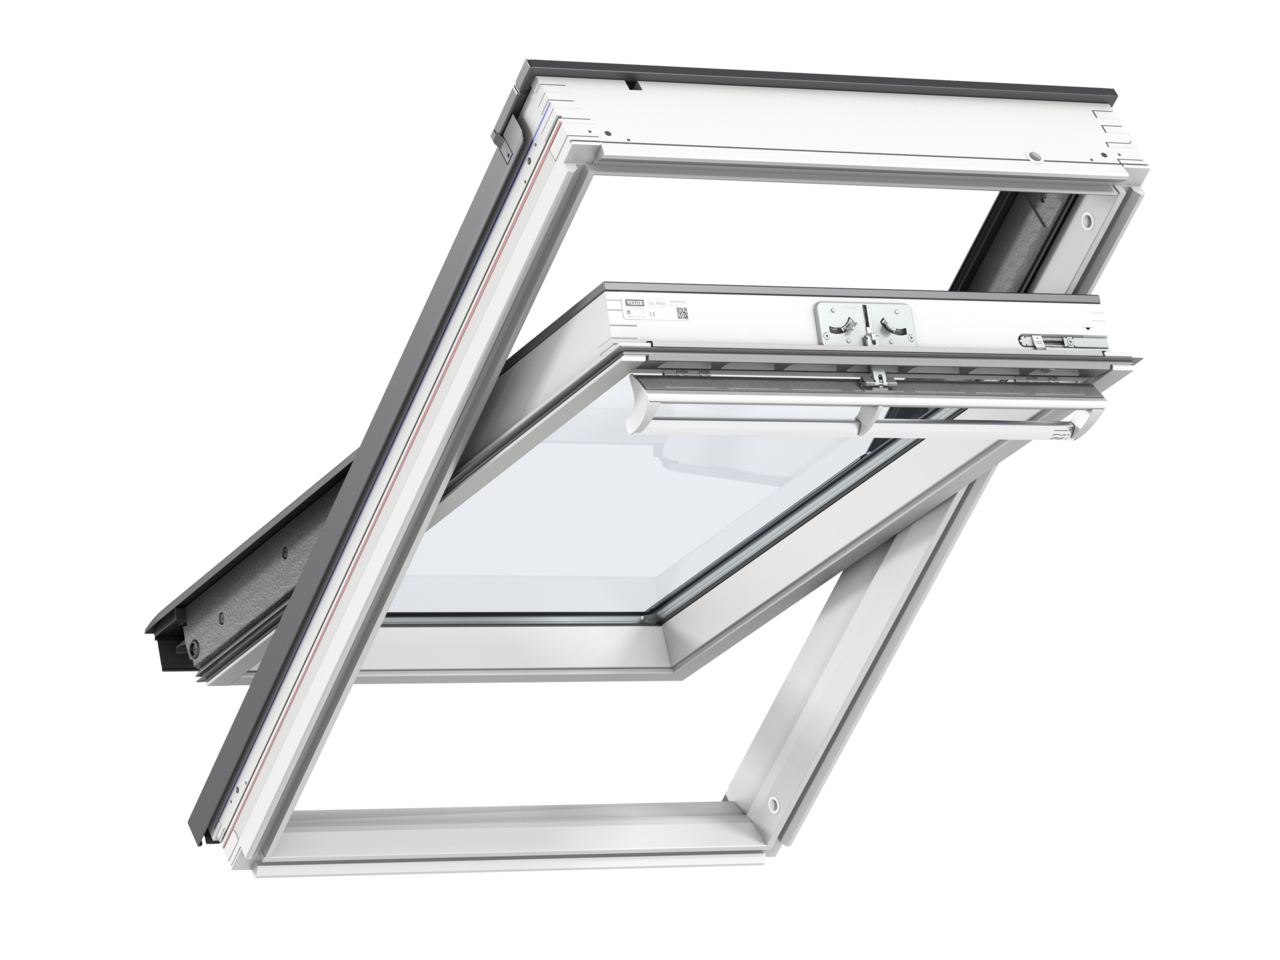 Velux GGL MK08 780 x 1400mm Centre Pivot 66 Pane Roof Window - White Painted